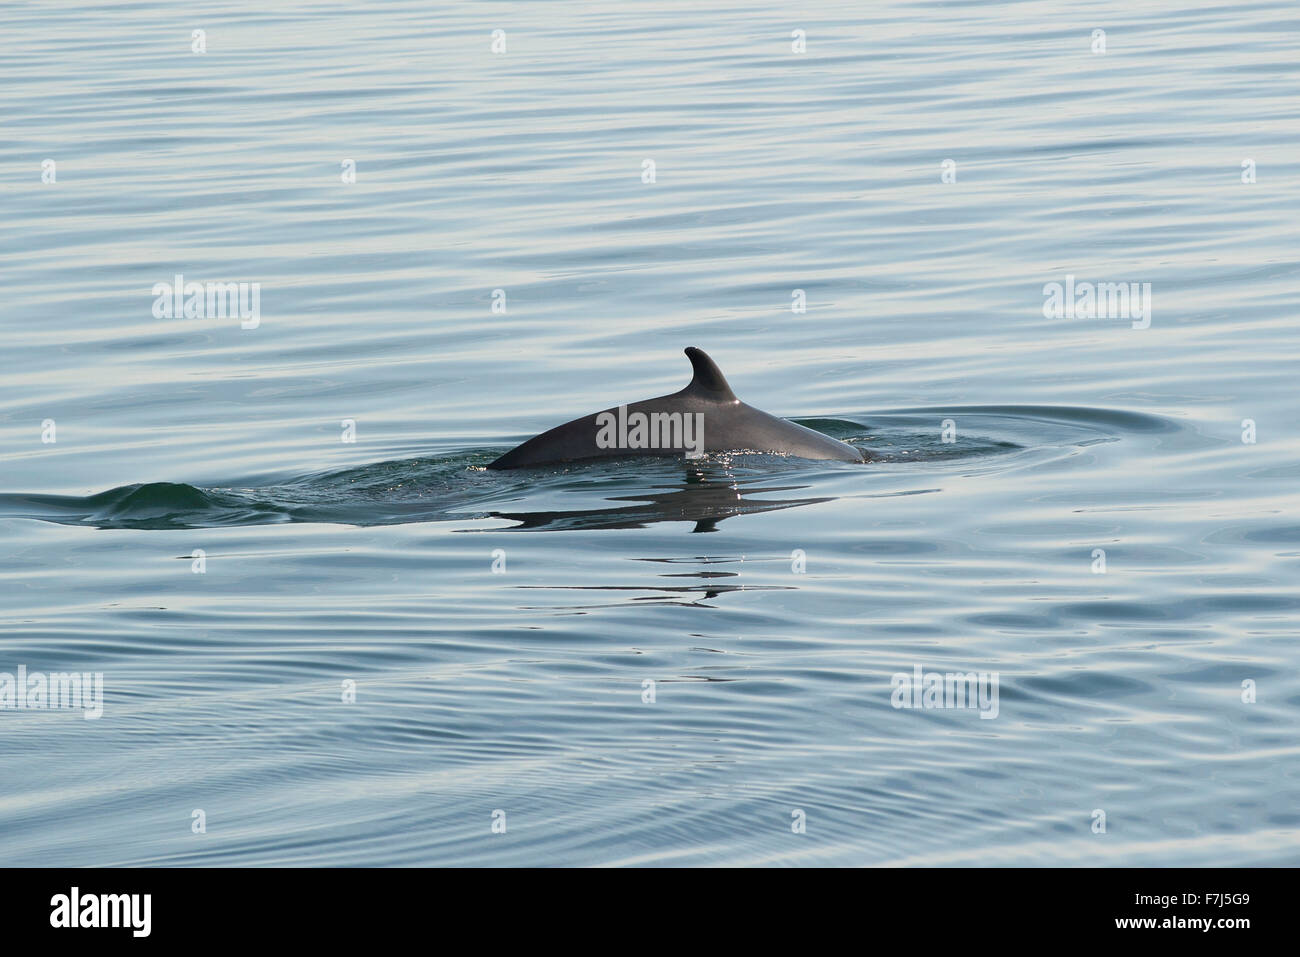 Dolphin swimming in water - Stock Image